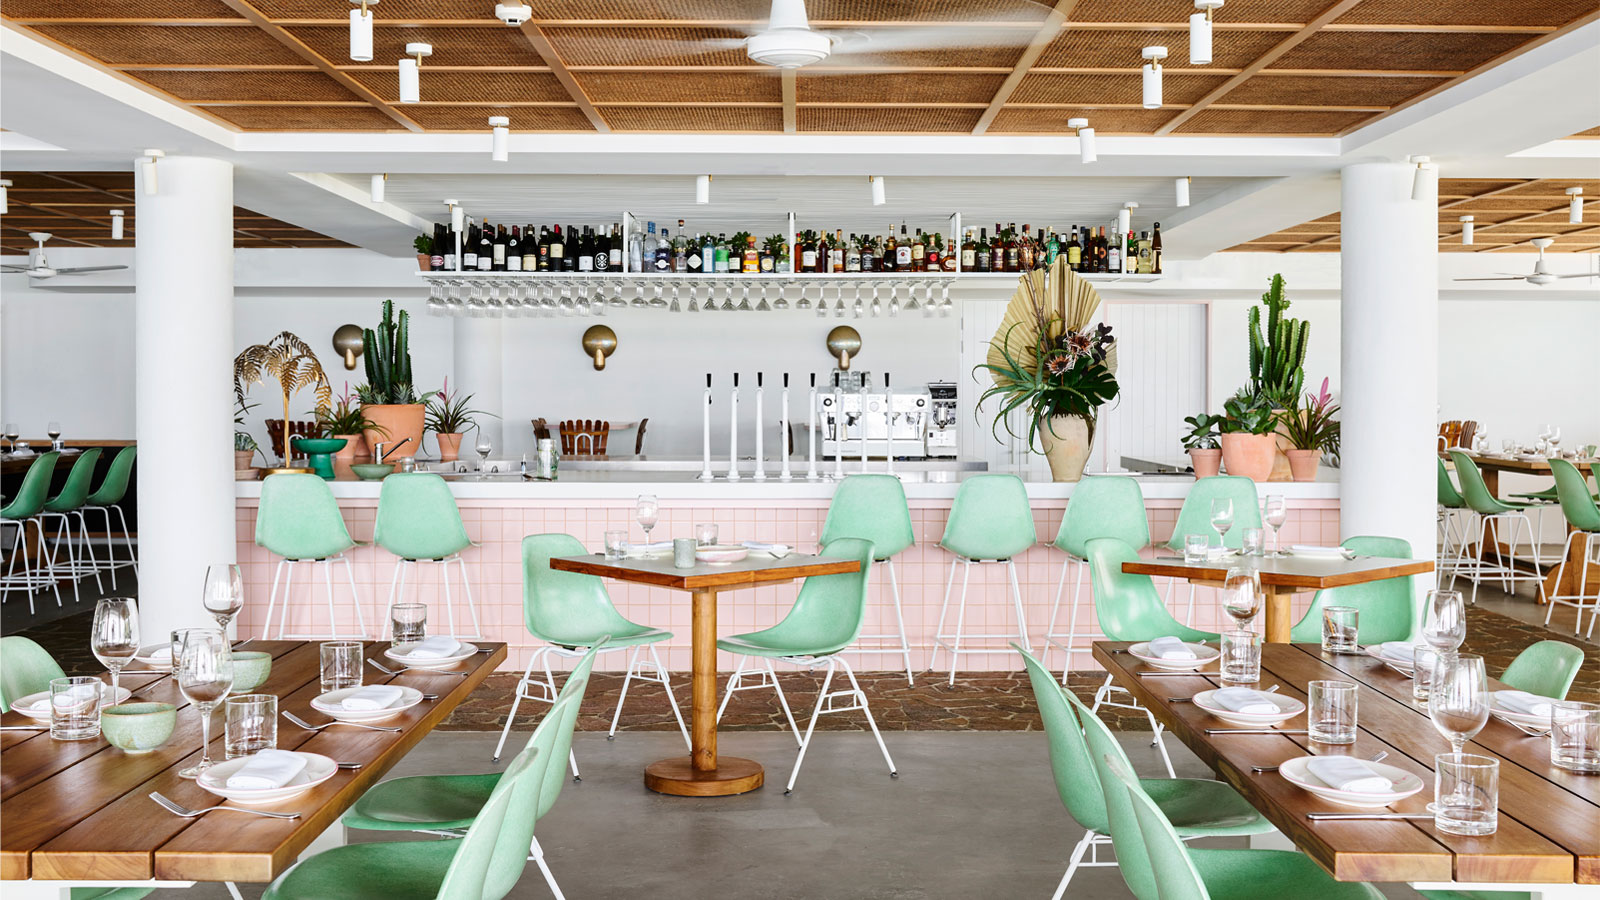 Tropical Restaurant and Bar. Pistachio coloured chairs with wooden tables and bar with pink tiles.